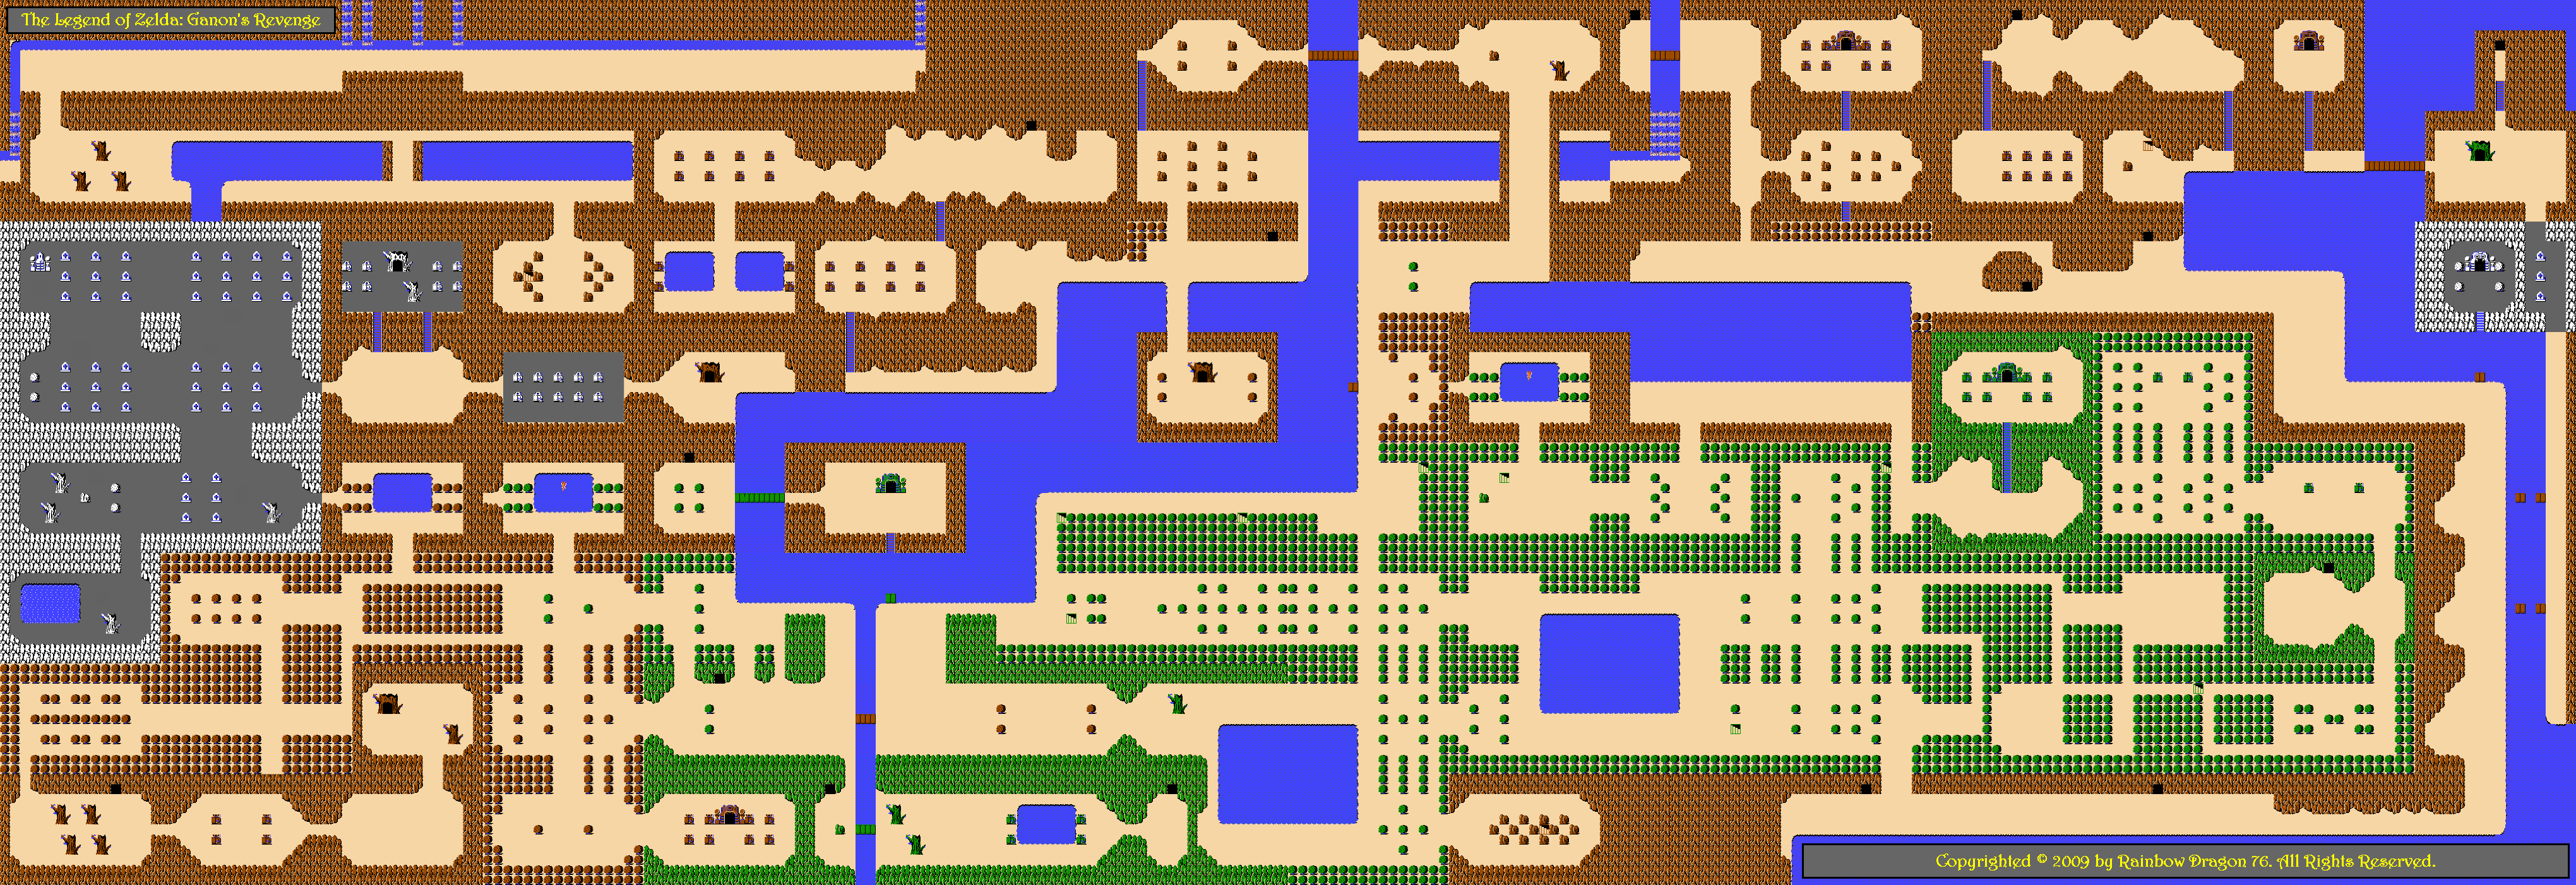 3454906413_4552fe9f46_o_d Zelda Map on making a simple map, hyrule world map, skyward sword sky map, king's quest 1 map, tomb raider 1 map, portal 1 map, metal gear solid 1 map, assassin's creed 1 map, strategy 1 map, nes zelda world map, mario 1 map, legacy of the wizard map, zelda cheat map, zelda adventure map, majora's mask map, guild wars 1 map, zelda 3 map, history mind map, uncharted 1 map, the sims 1 map,